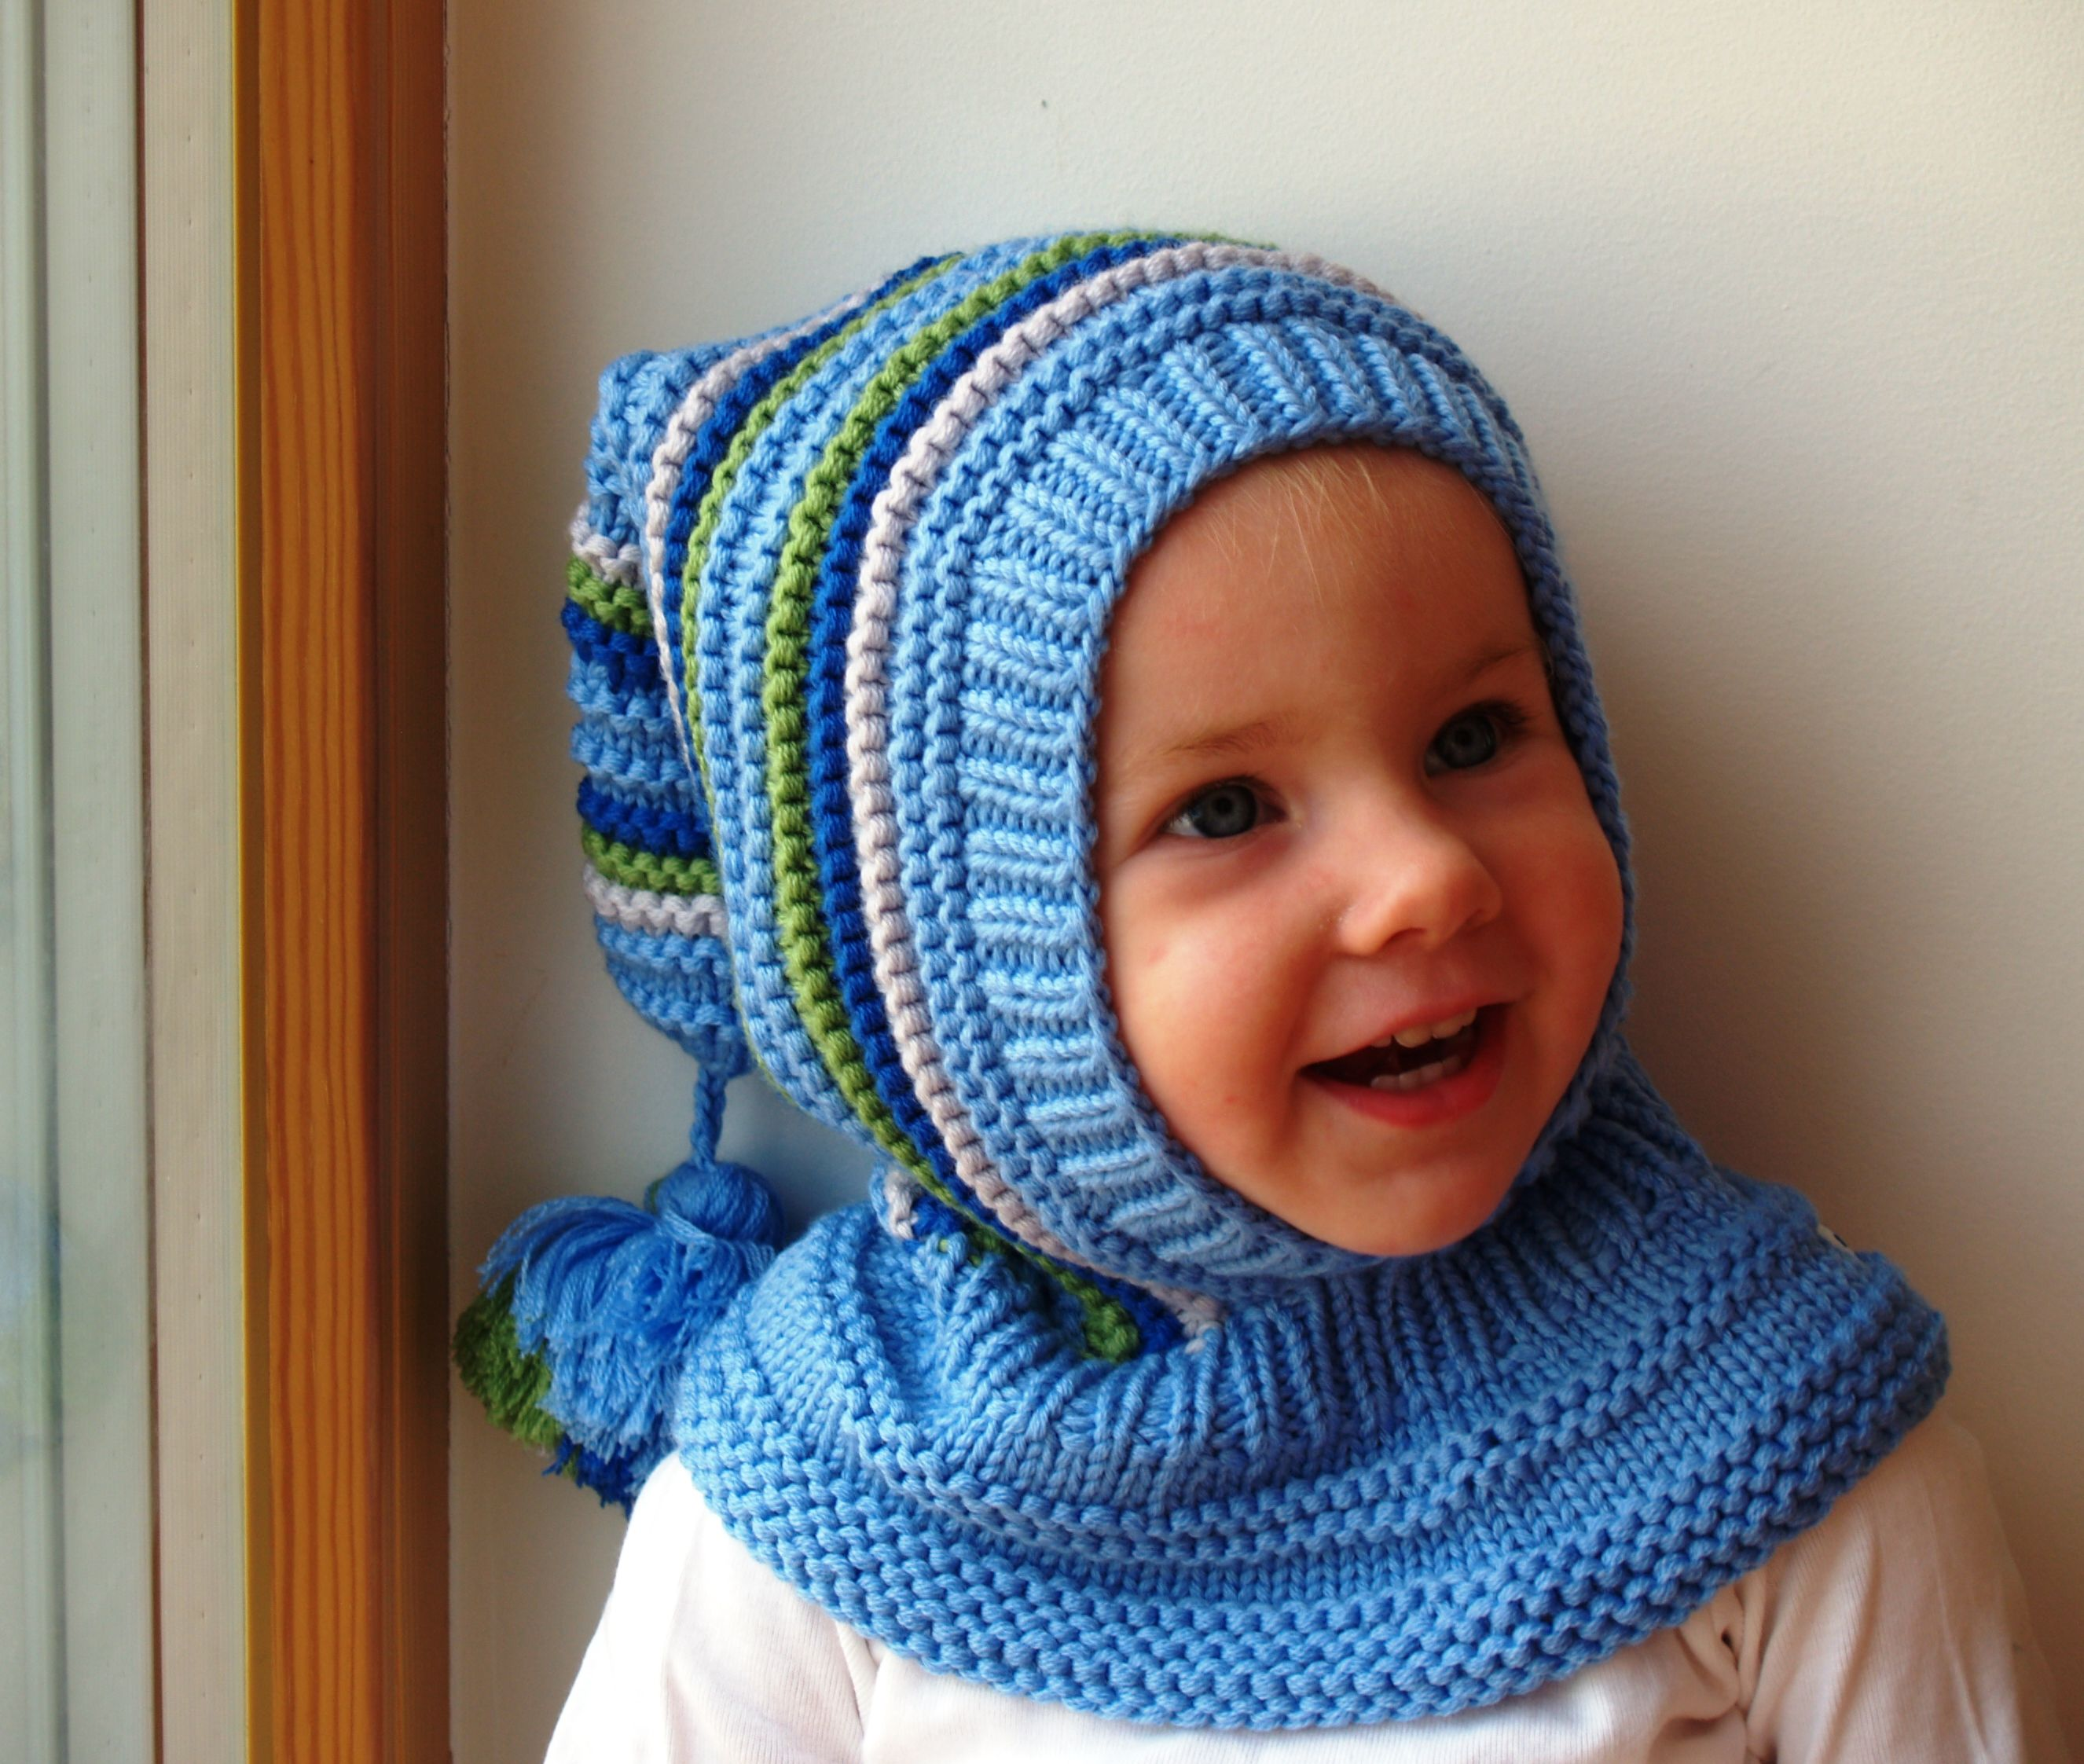 Blue elf hat. Knit Balaclava for Baby,Toddler,Boy Hoodie Hat with ...